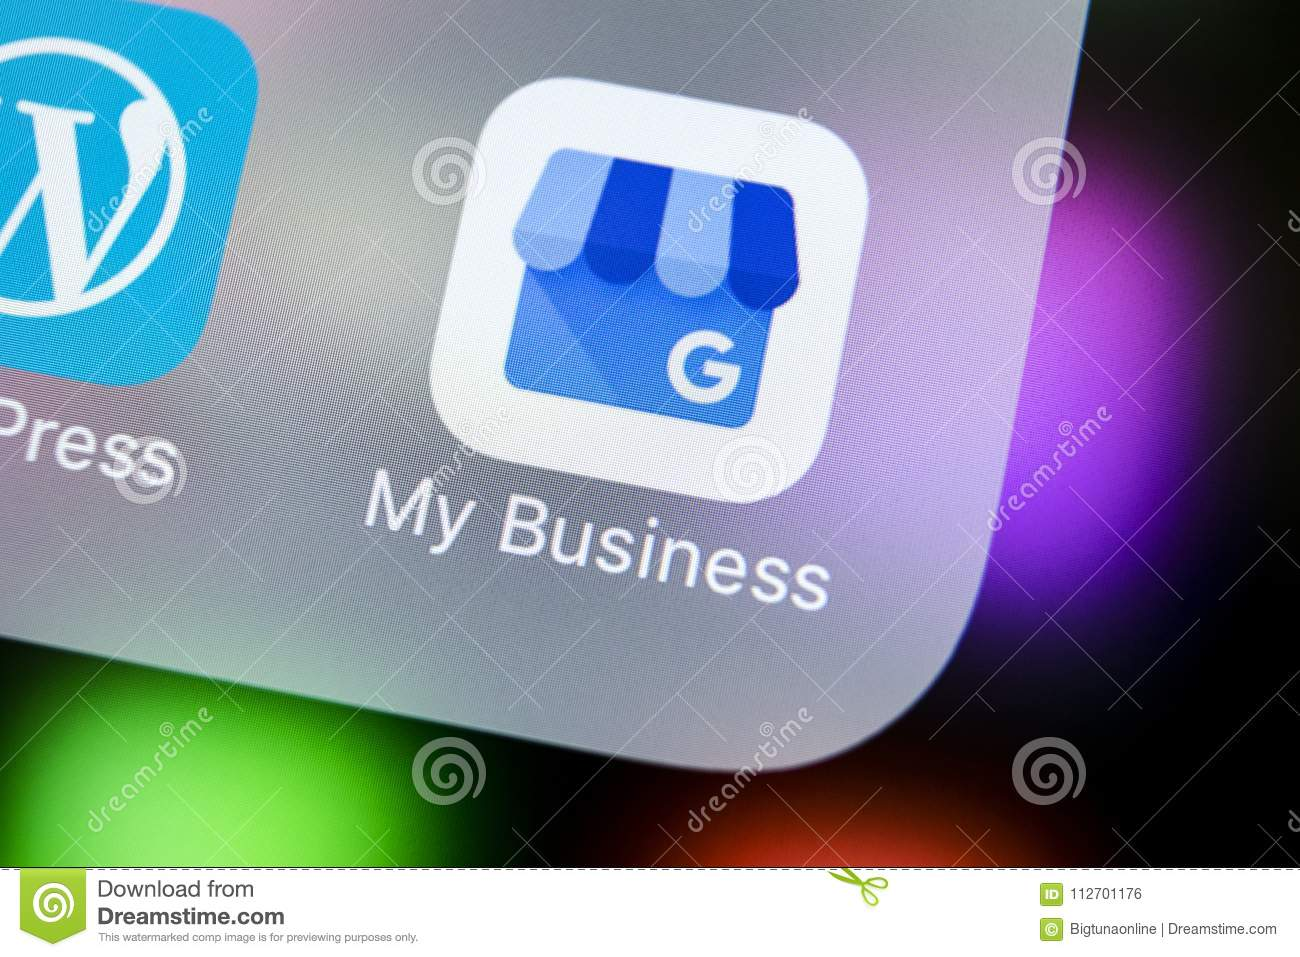 Google My Business application icon on Apple iPhone X screen close-up. Google My Business icon. Google My business application.